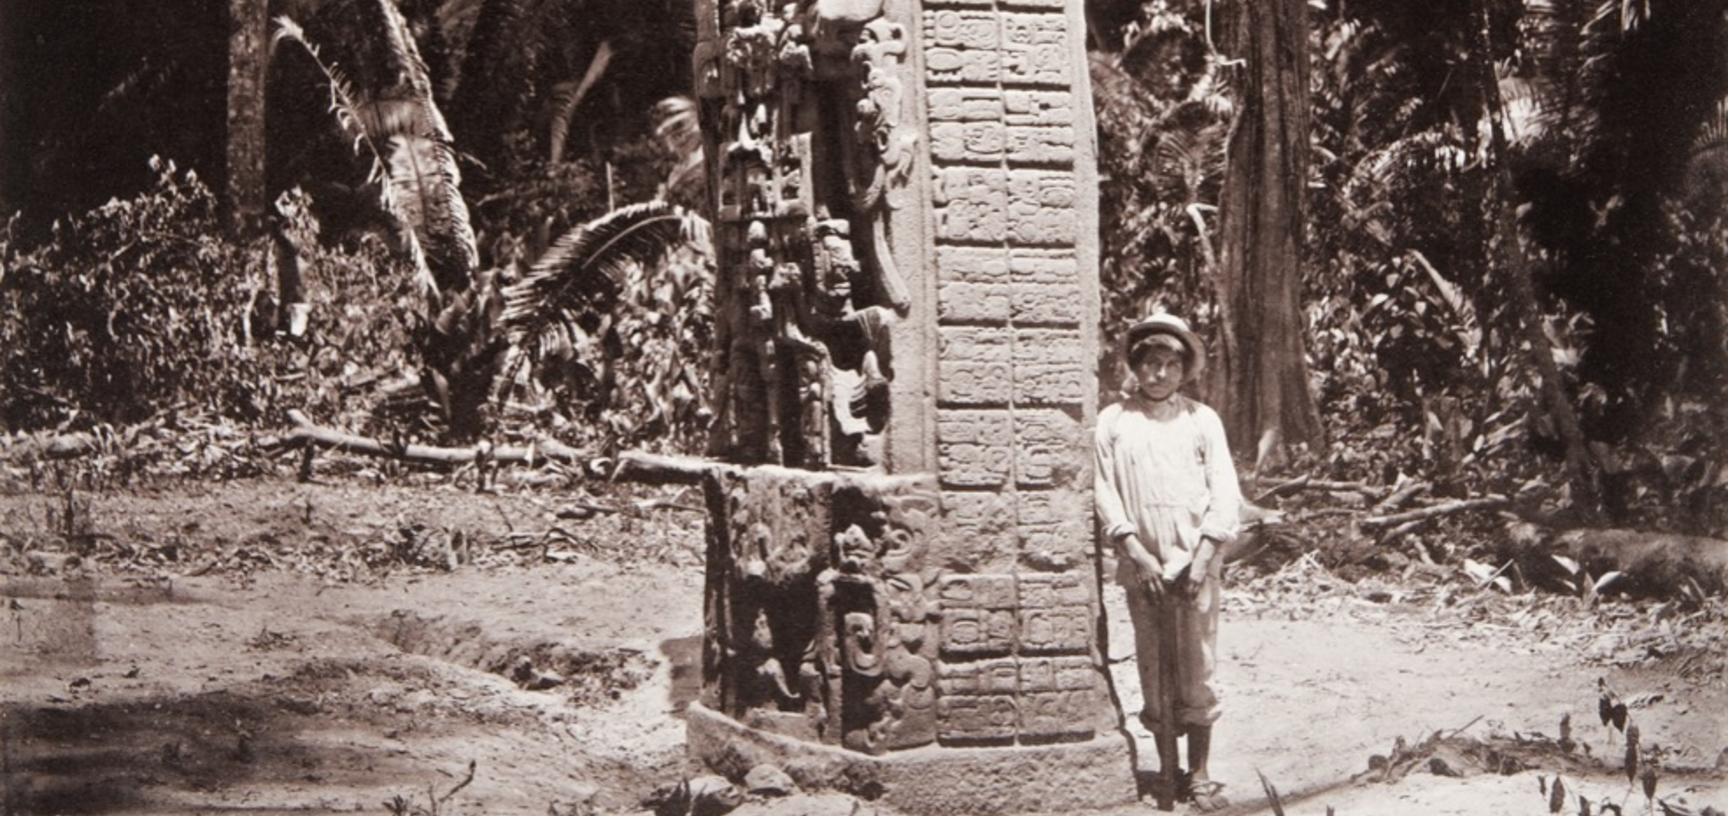 Stela D (Monument 4), west side, dated AD 766. Maudslay has included in the photograph one of his local assistants, or mozos, to show the huge size of the monolith, nearly six metres in height. The sculpture is made of red sandstone, a stone not available